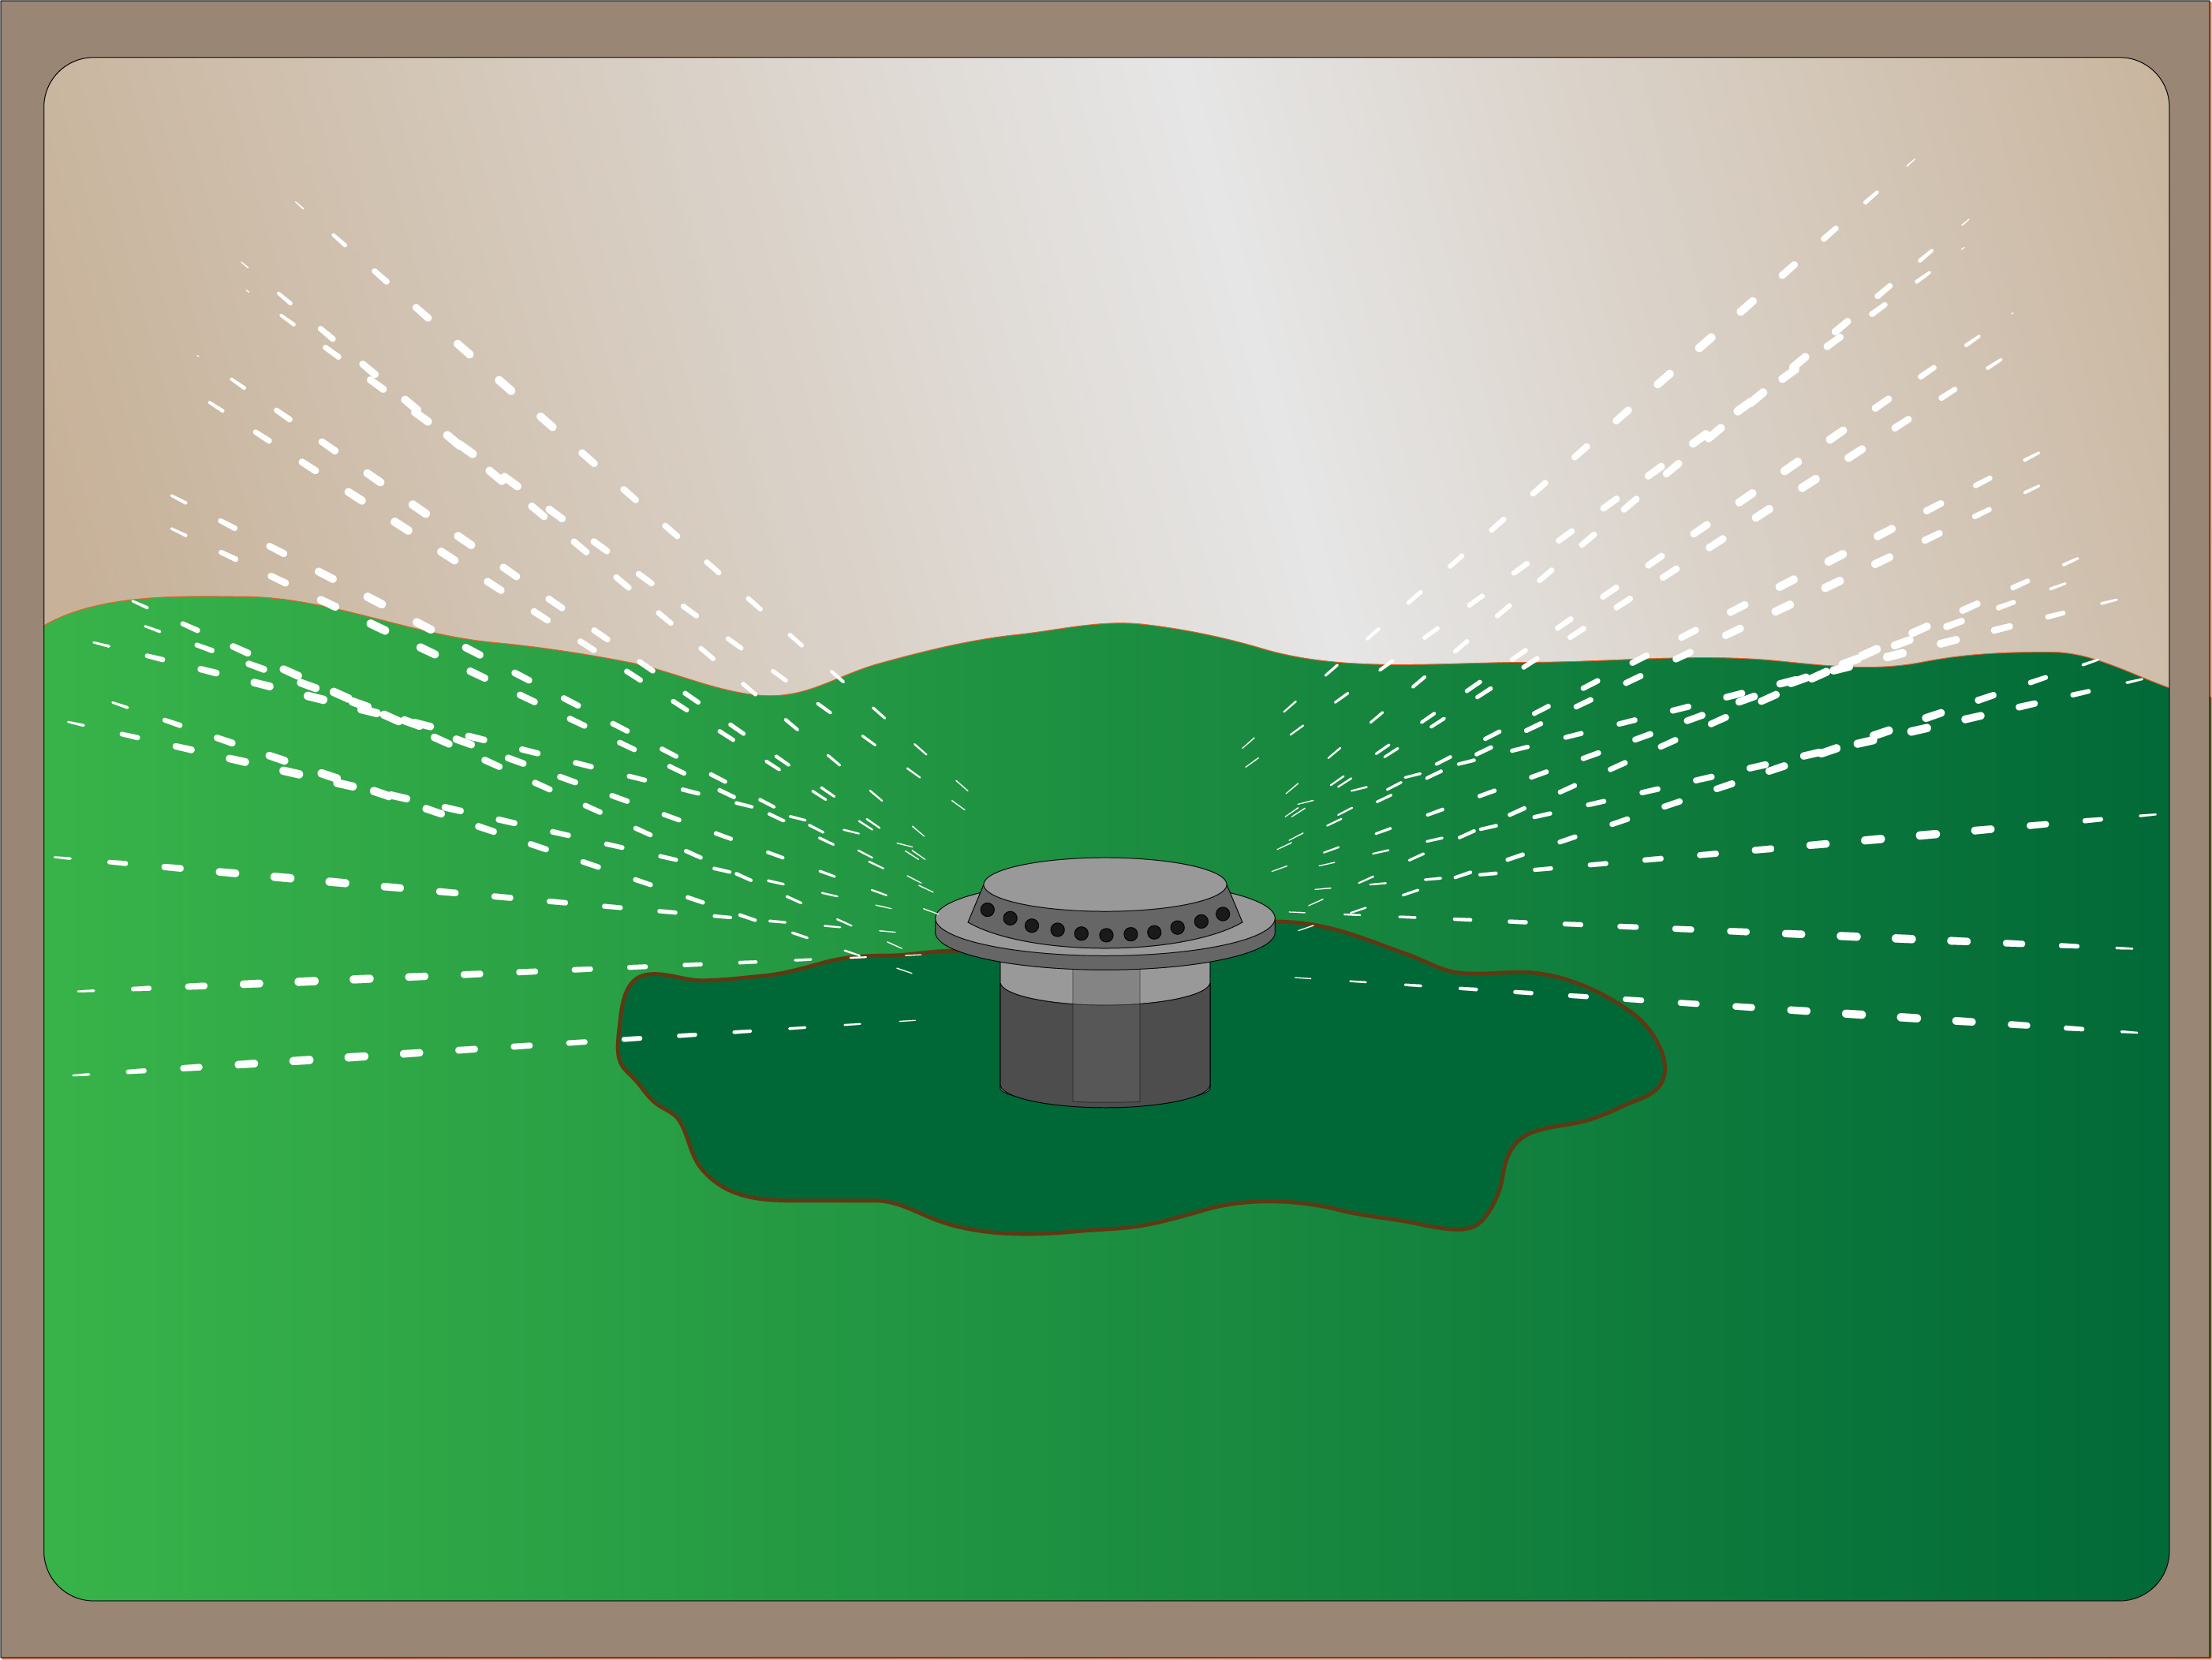 Irrigation system clipart.